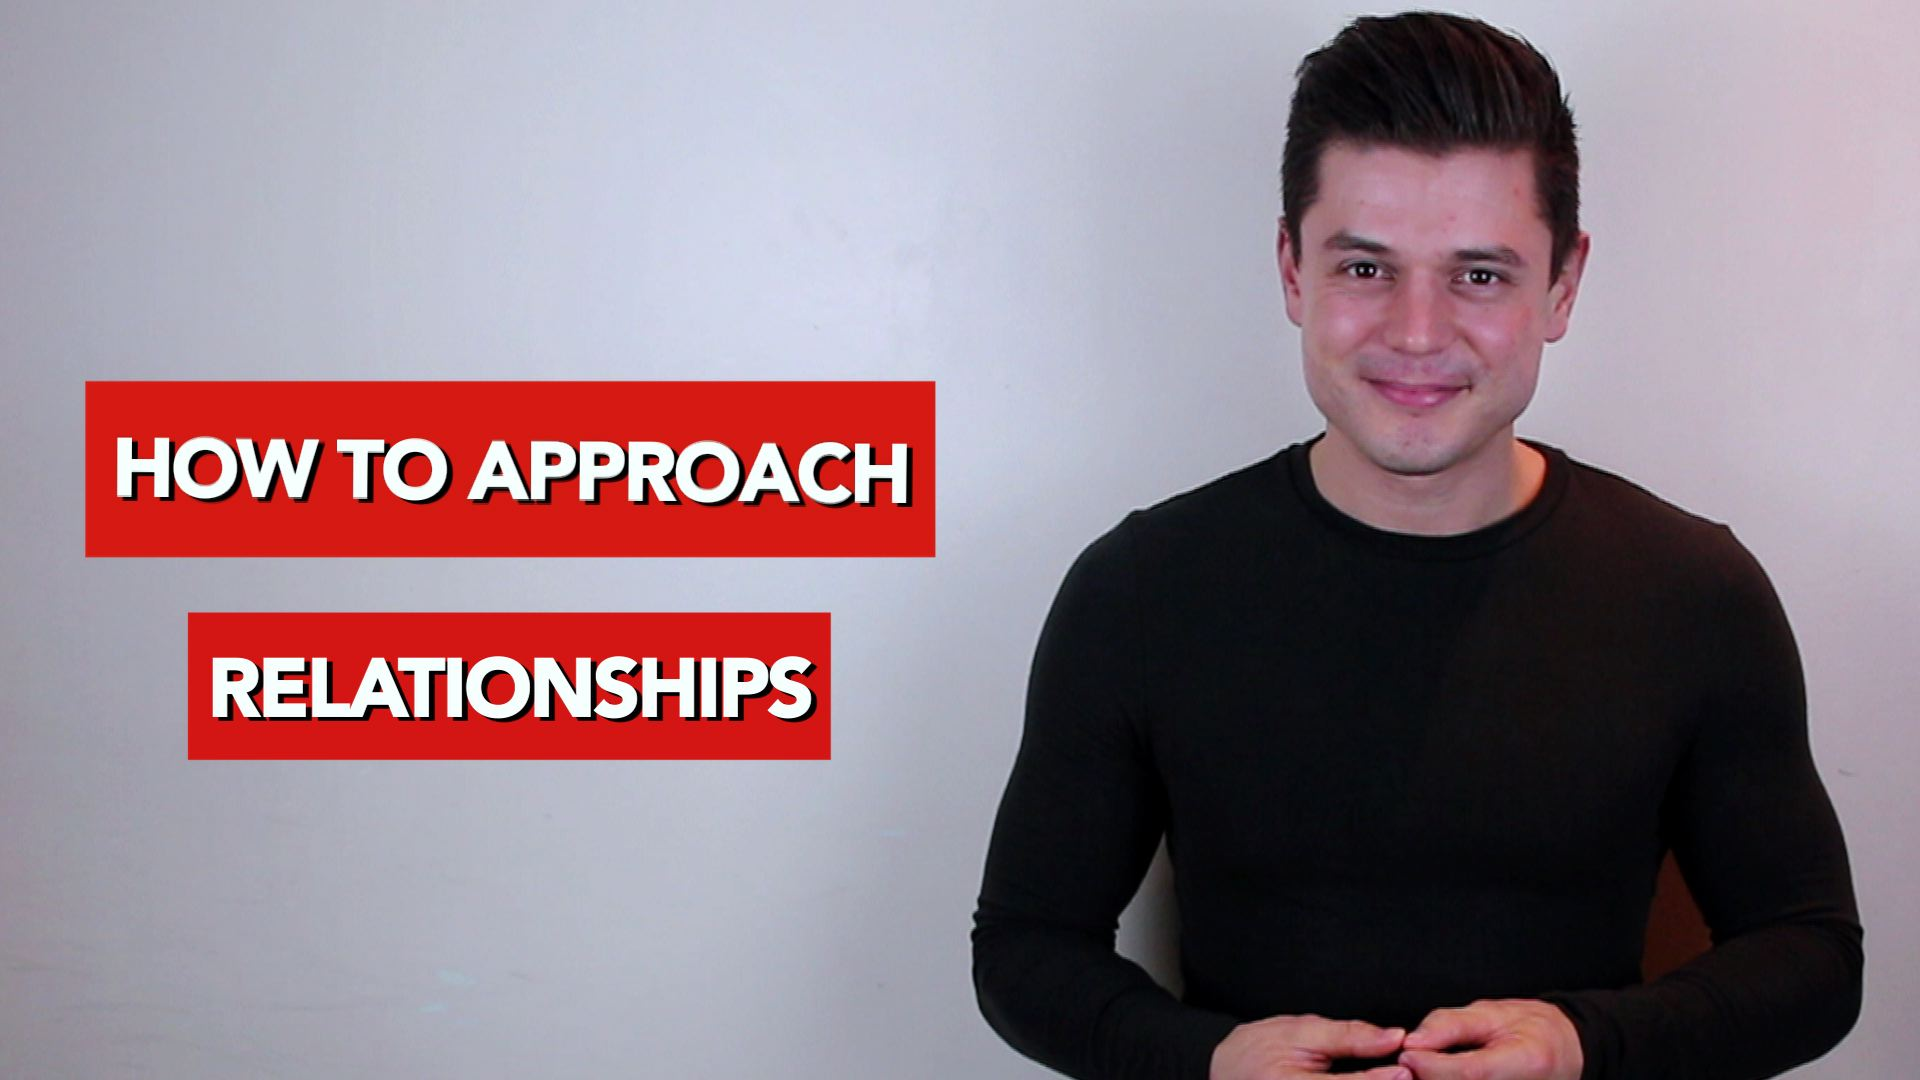 How to approach relationships